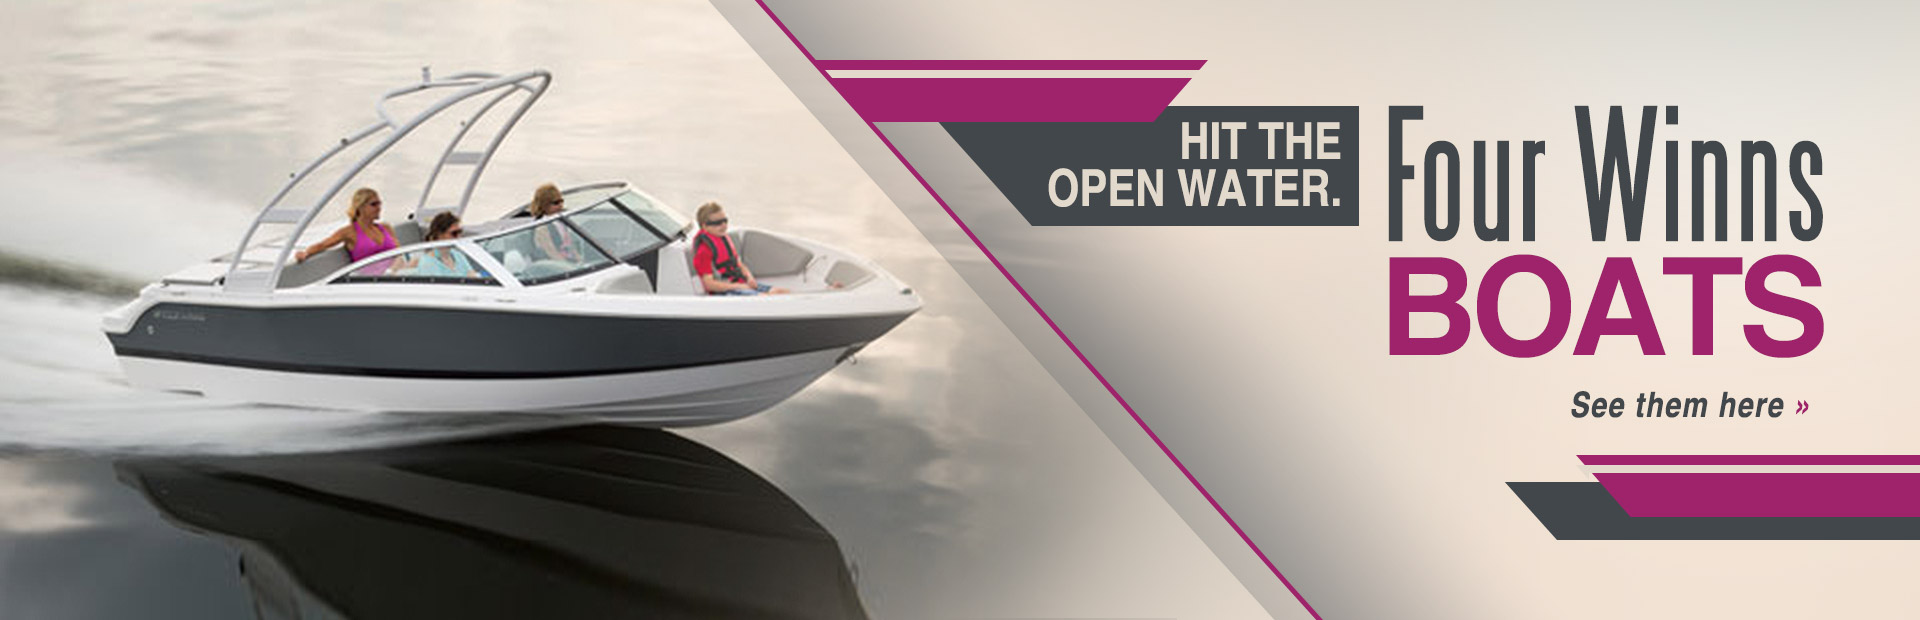 Four Winns boats: Click here to view the models.